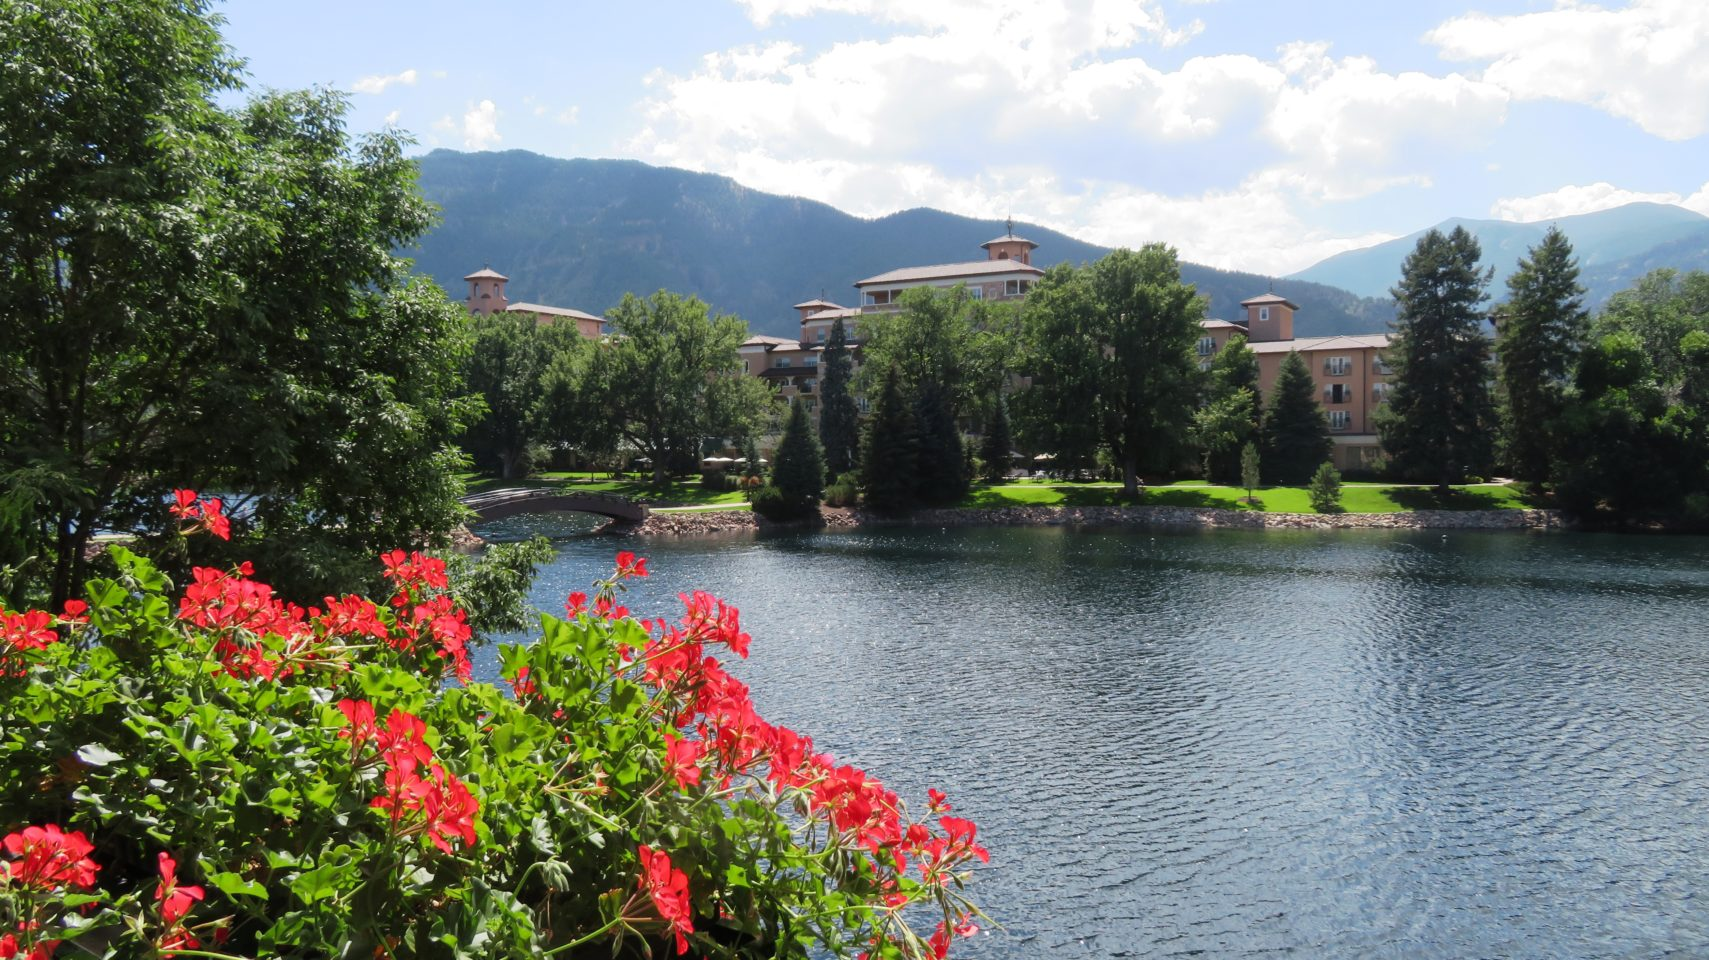 Incredibly beautiful view from the balcony of our room at The Broadmoor